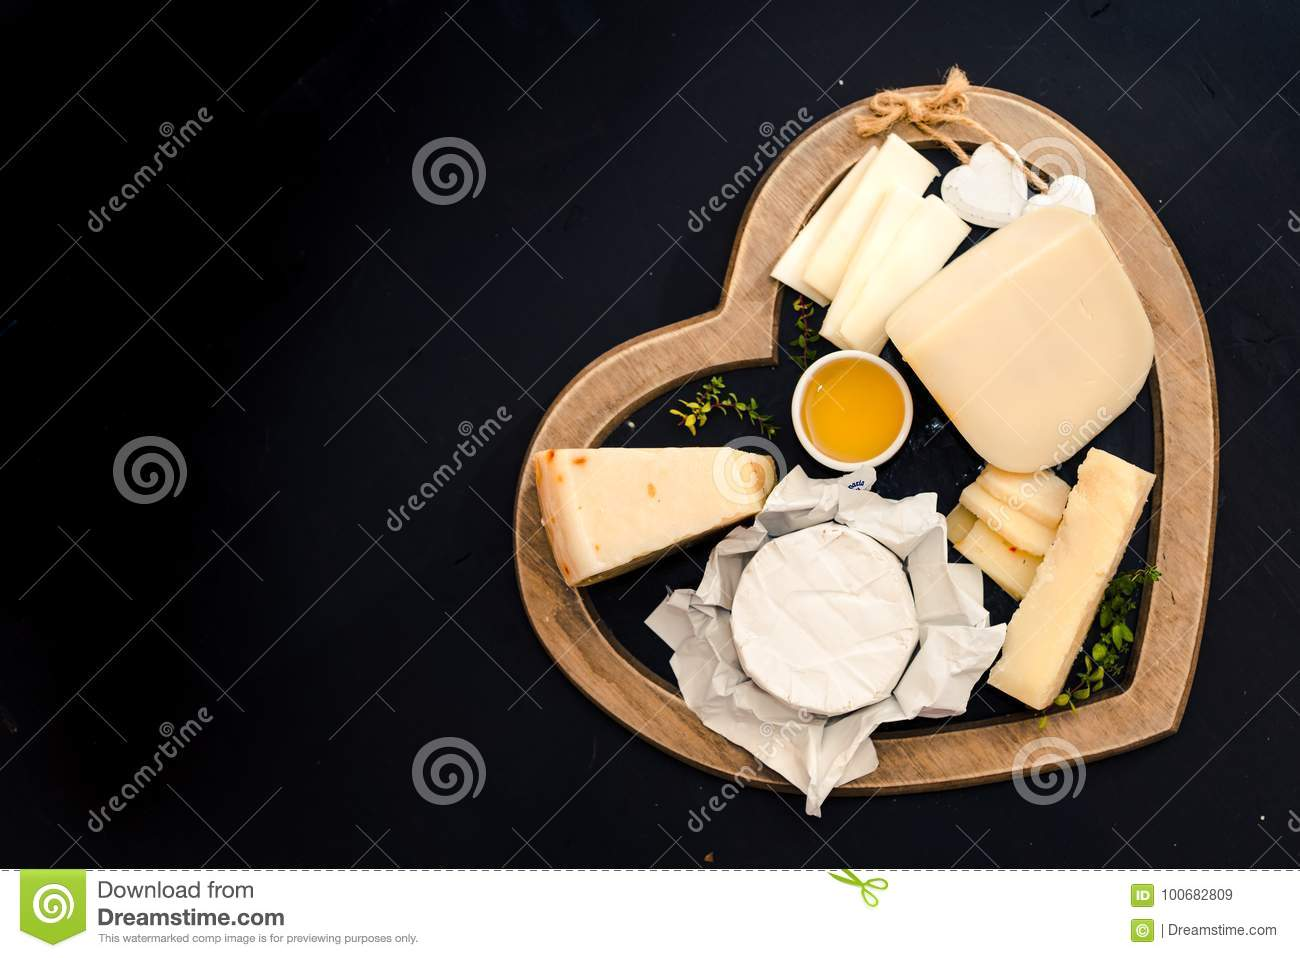 various types of cheese on a stand in the shape of a heart, concept elegant life and love cheese, top view